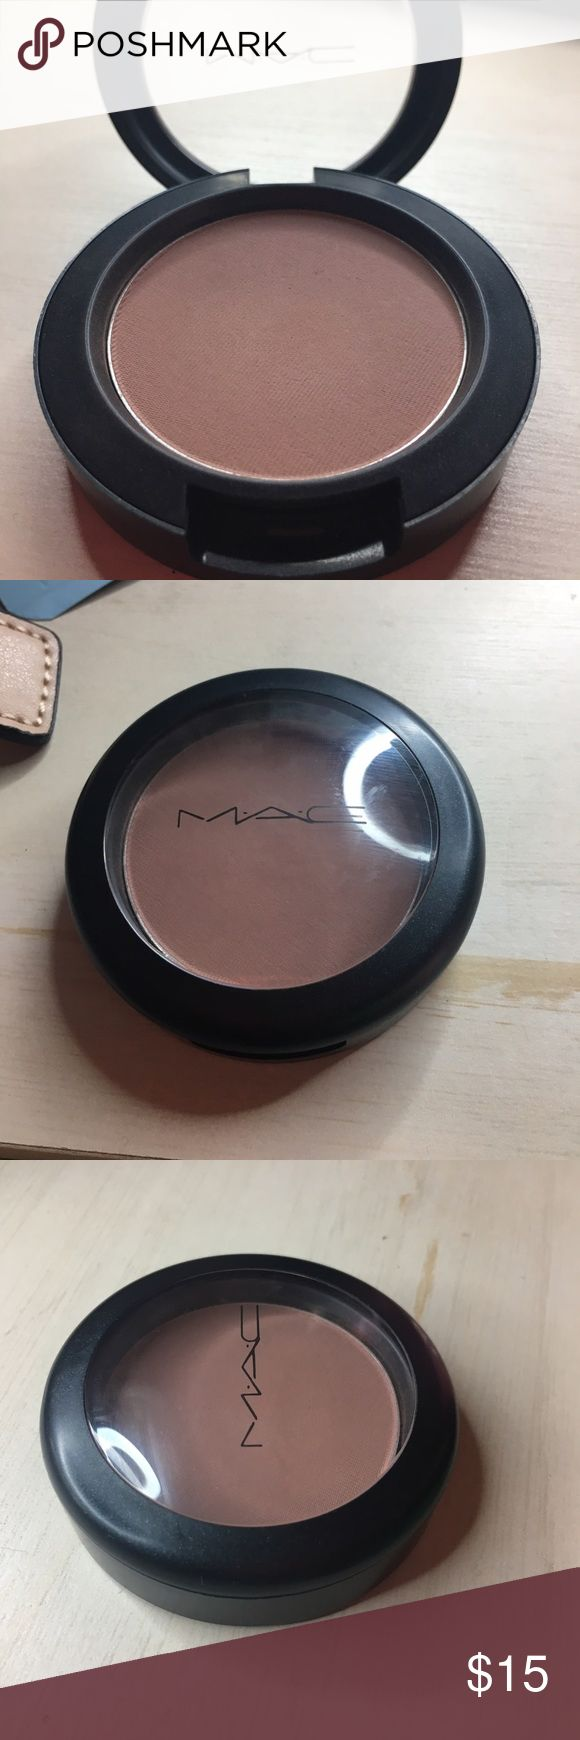 Like New MAC Harmony Blush Like New MAC Harmony Blush! Only swatched! Perfect neutral blush or contour shade. MAC Cosmetics Makeup Blush